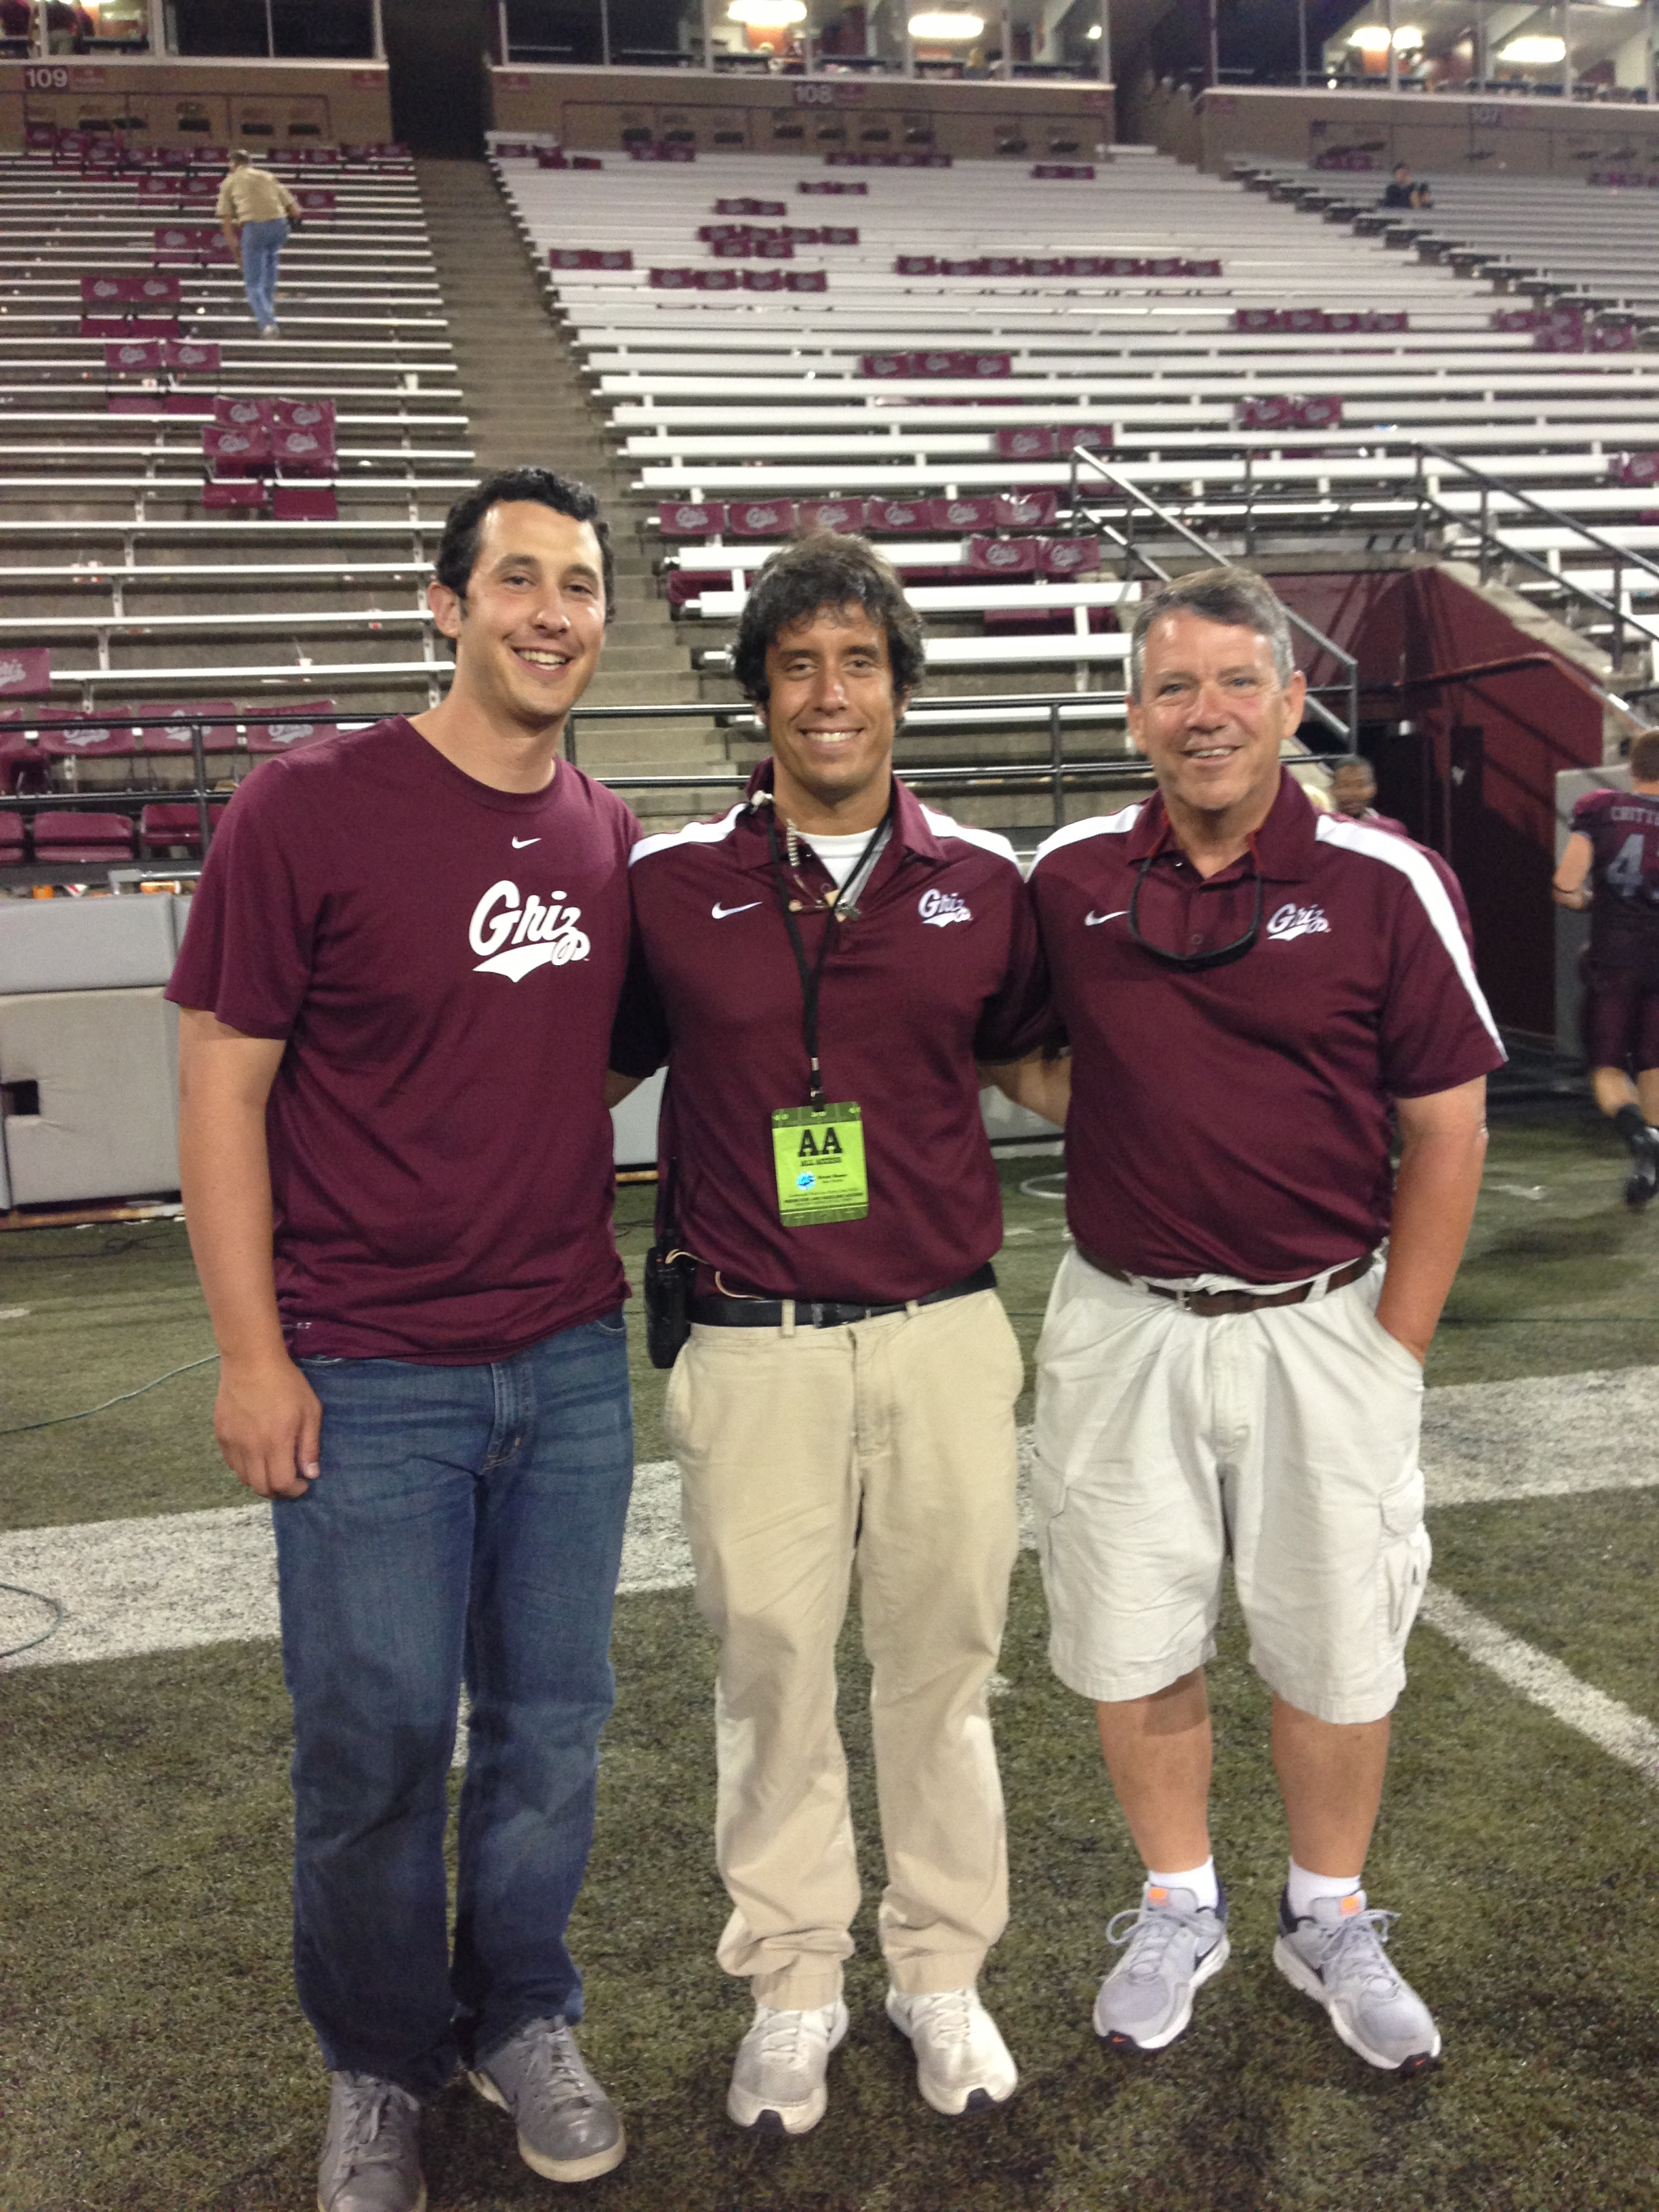 I was so happy that my brother and dad got to see this game and also catch my Griz Vision cameo.